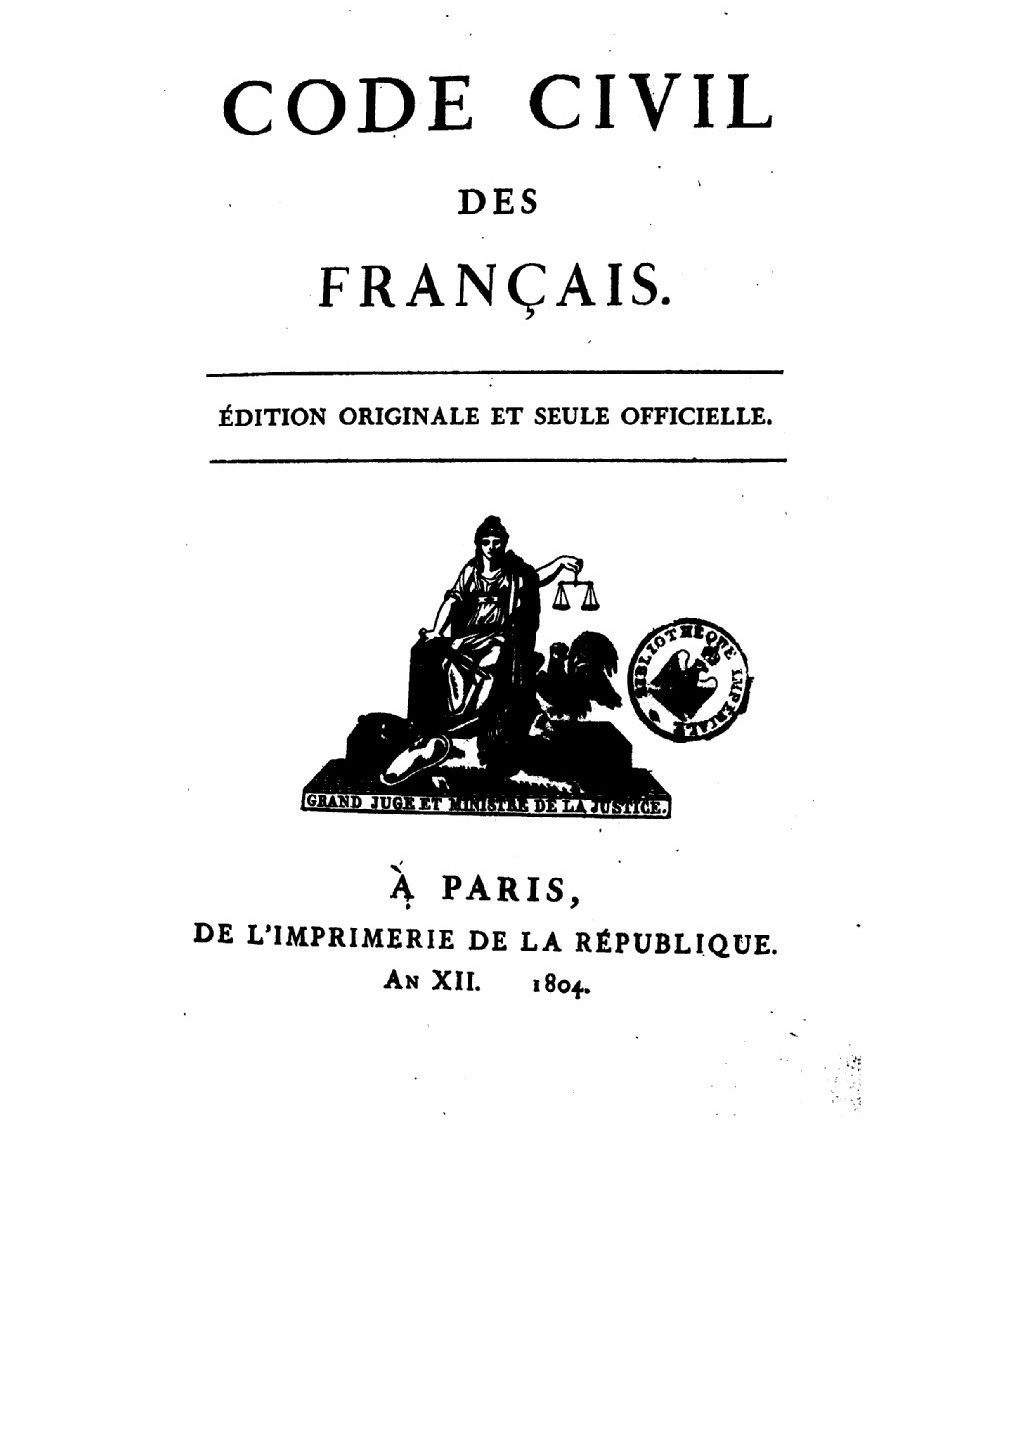 Couverture originale du Code civil, 1804, Gallica, Bnf.